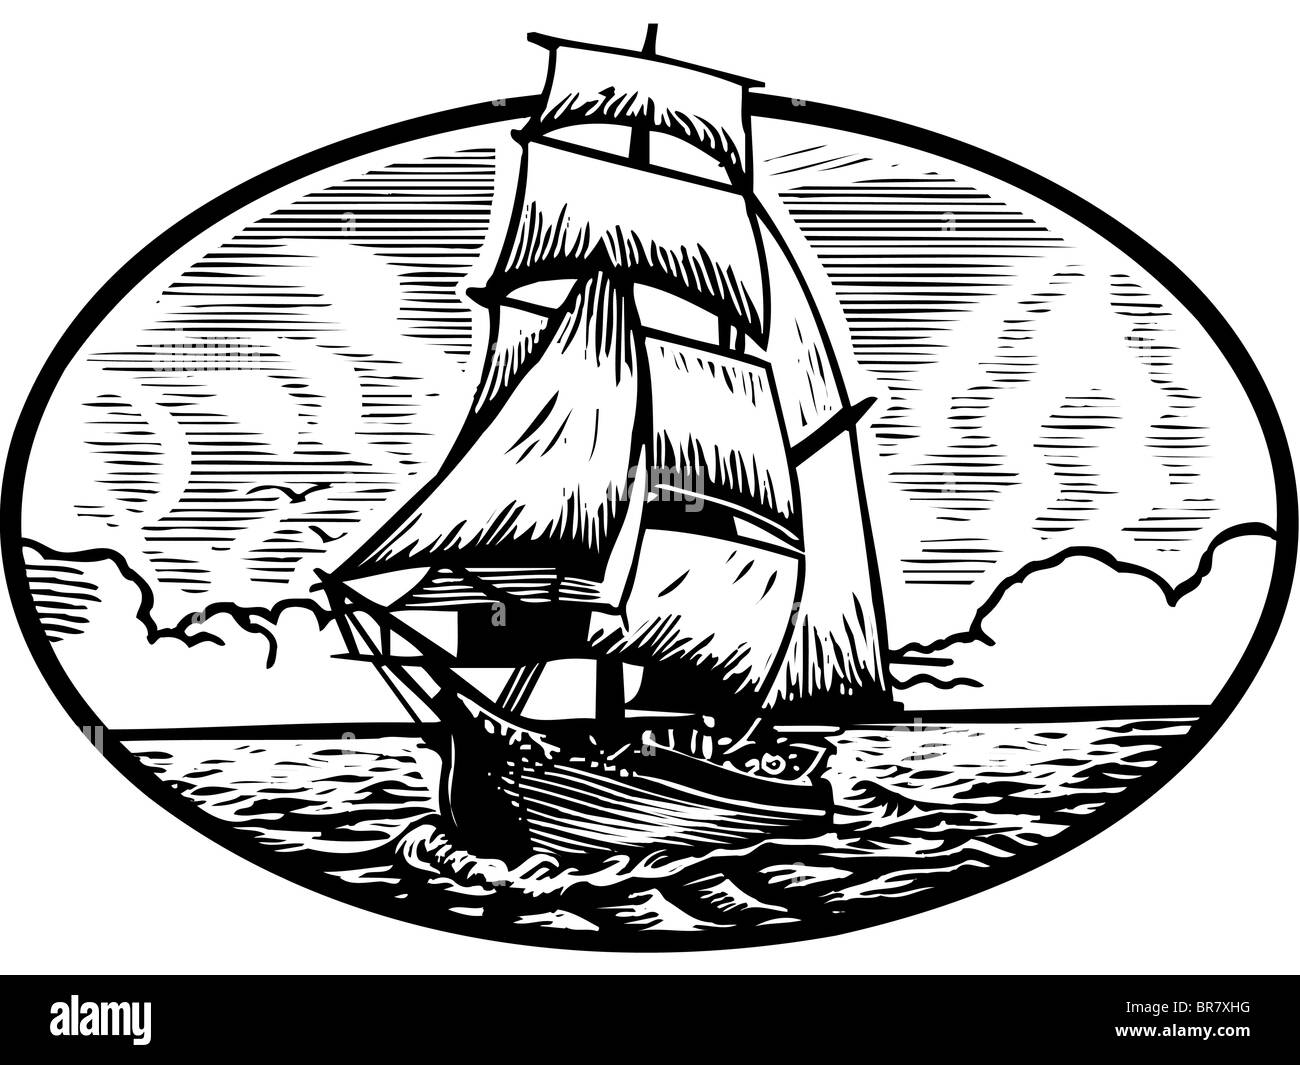 Illustration of a tall ship - Stock Image